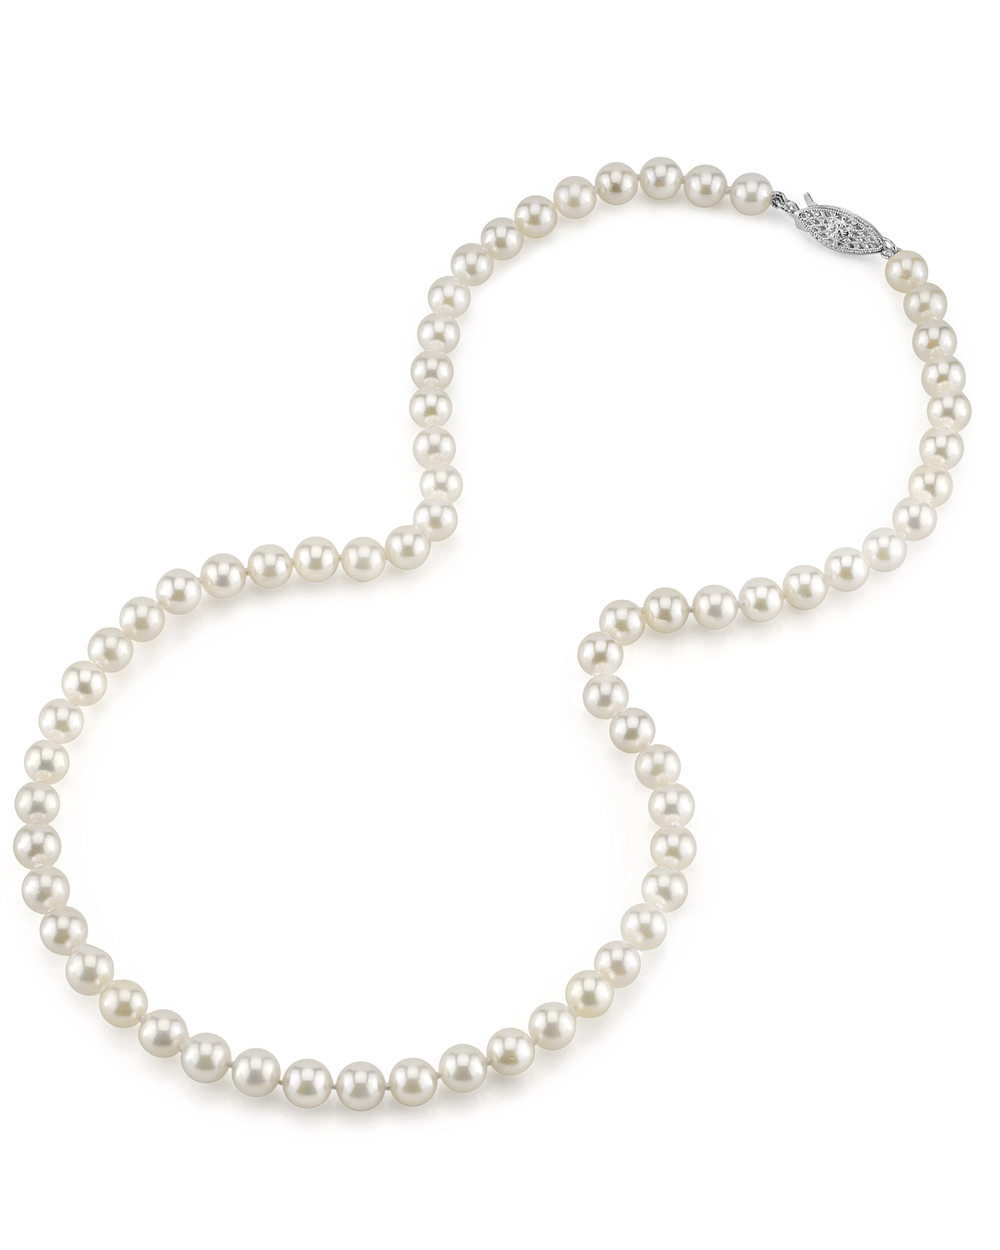 6.0-6.5mm Japanese Akoya White Pearl Necklace- AAA Quality